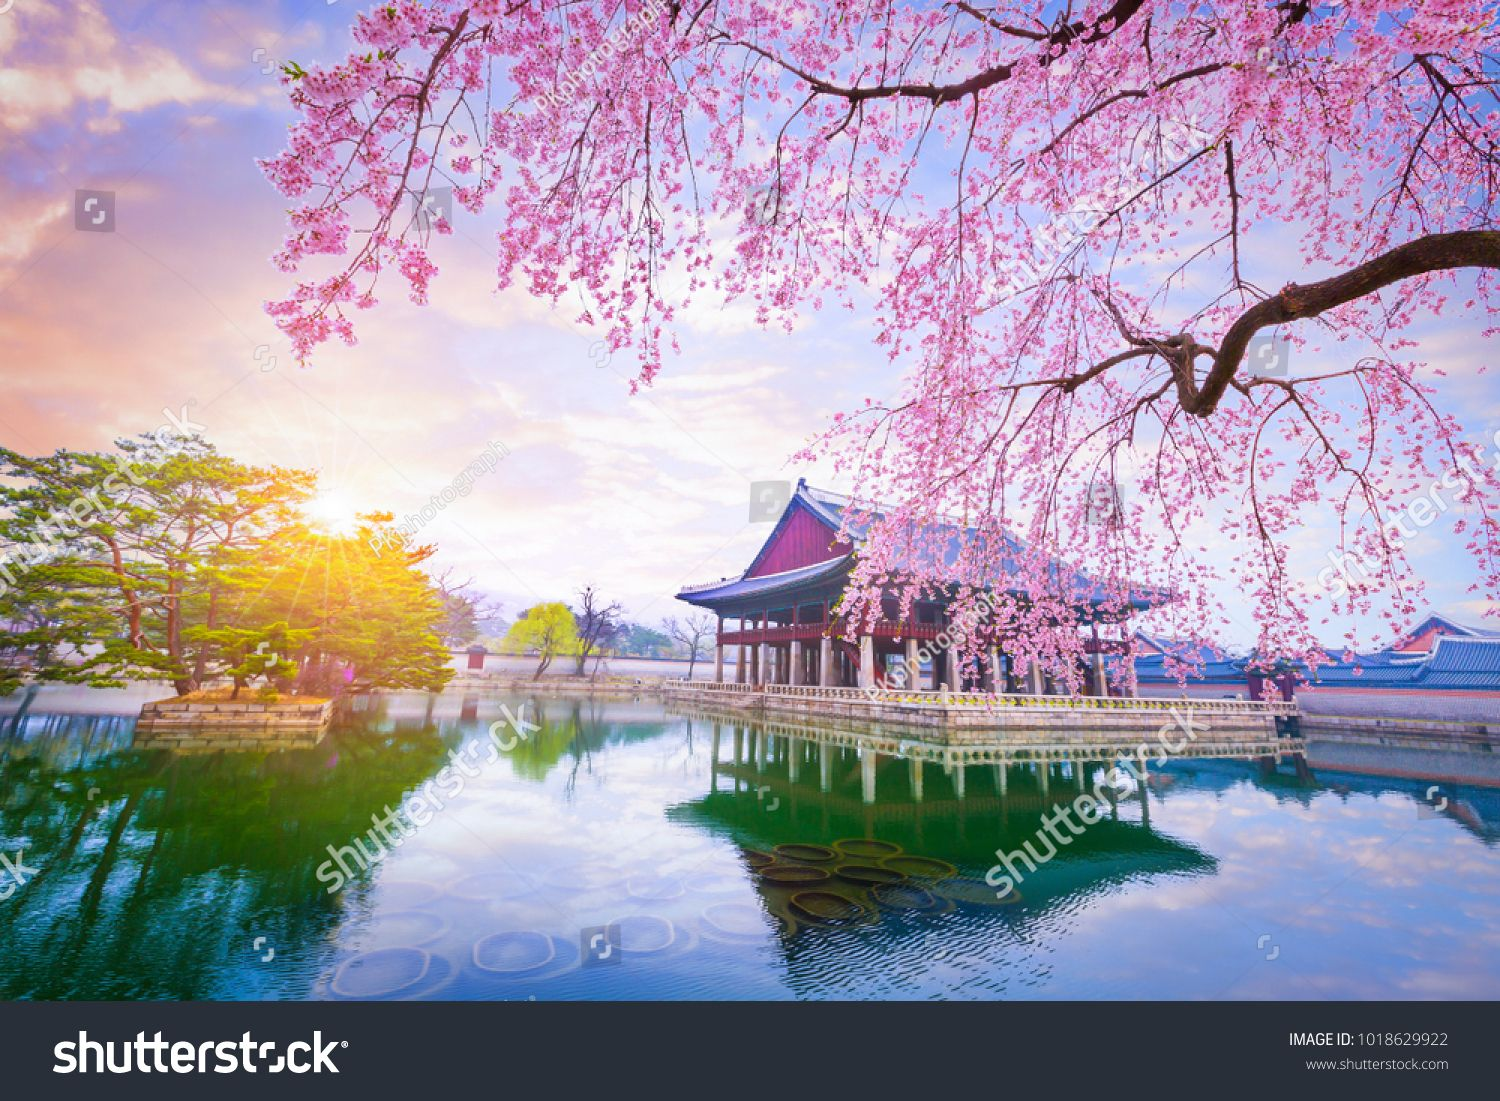 Gyeongbokgung Palace With Cherry Blossom Tree In Spring Time In Seoul City Of Korea South Best Solo Travel Destinations Solo Travel Destinations Korea Travel